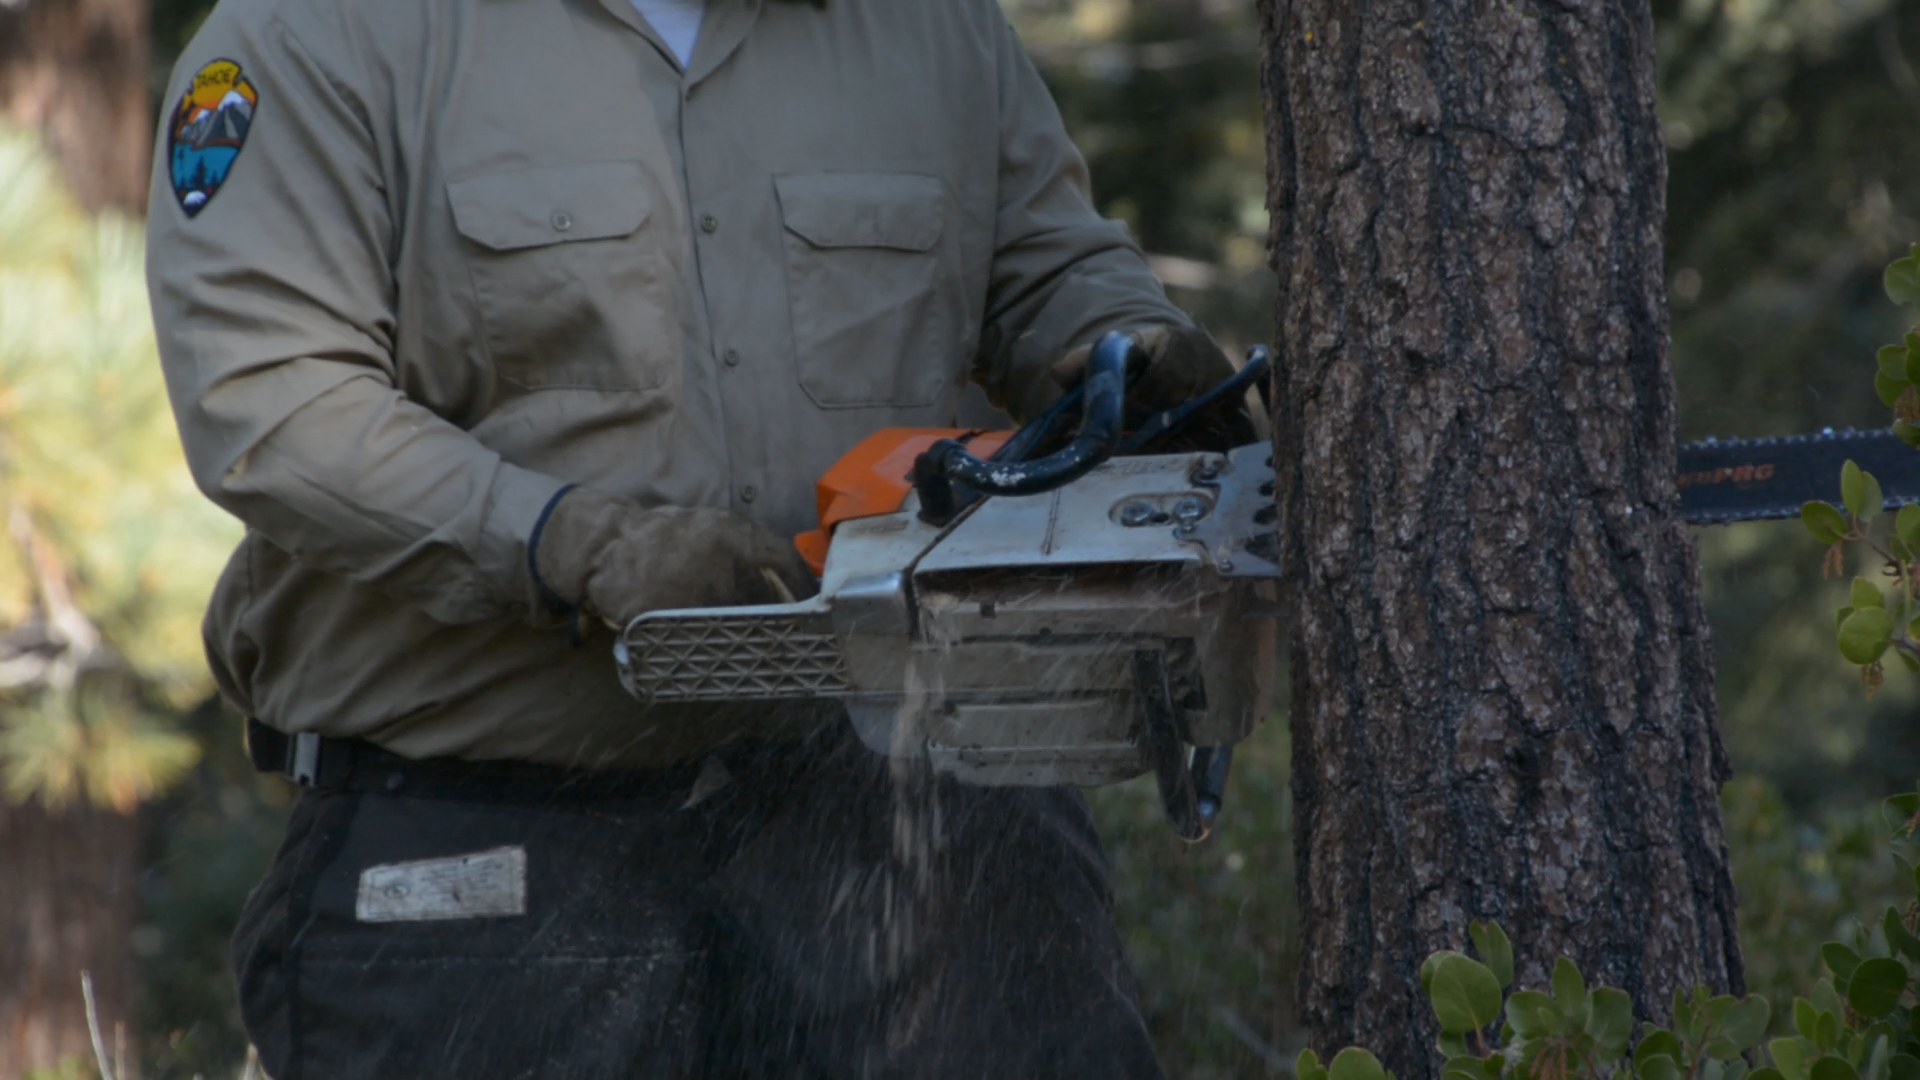 image Corpsmember cutting tree